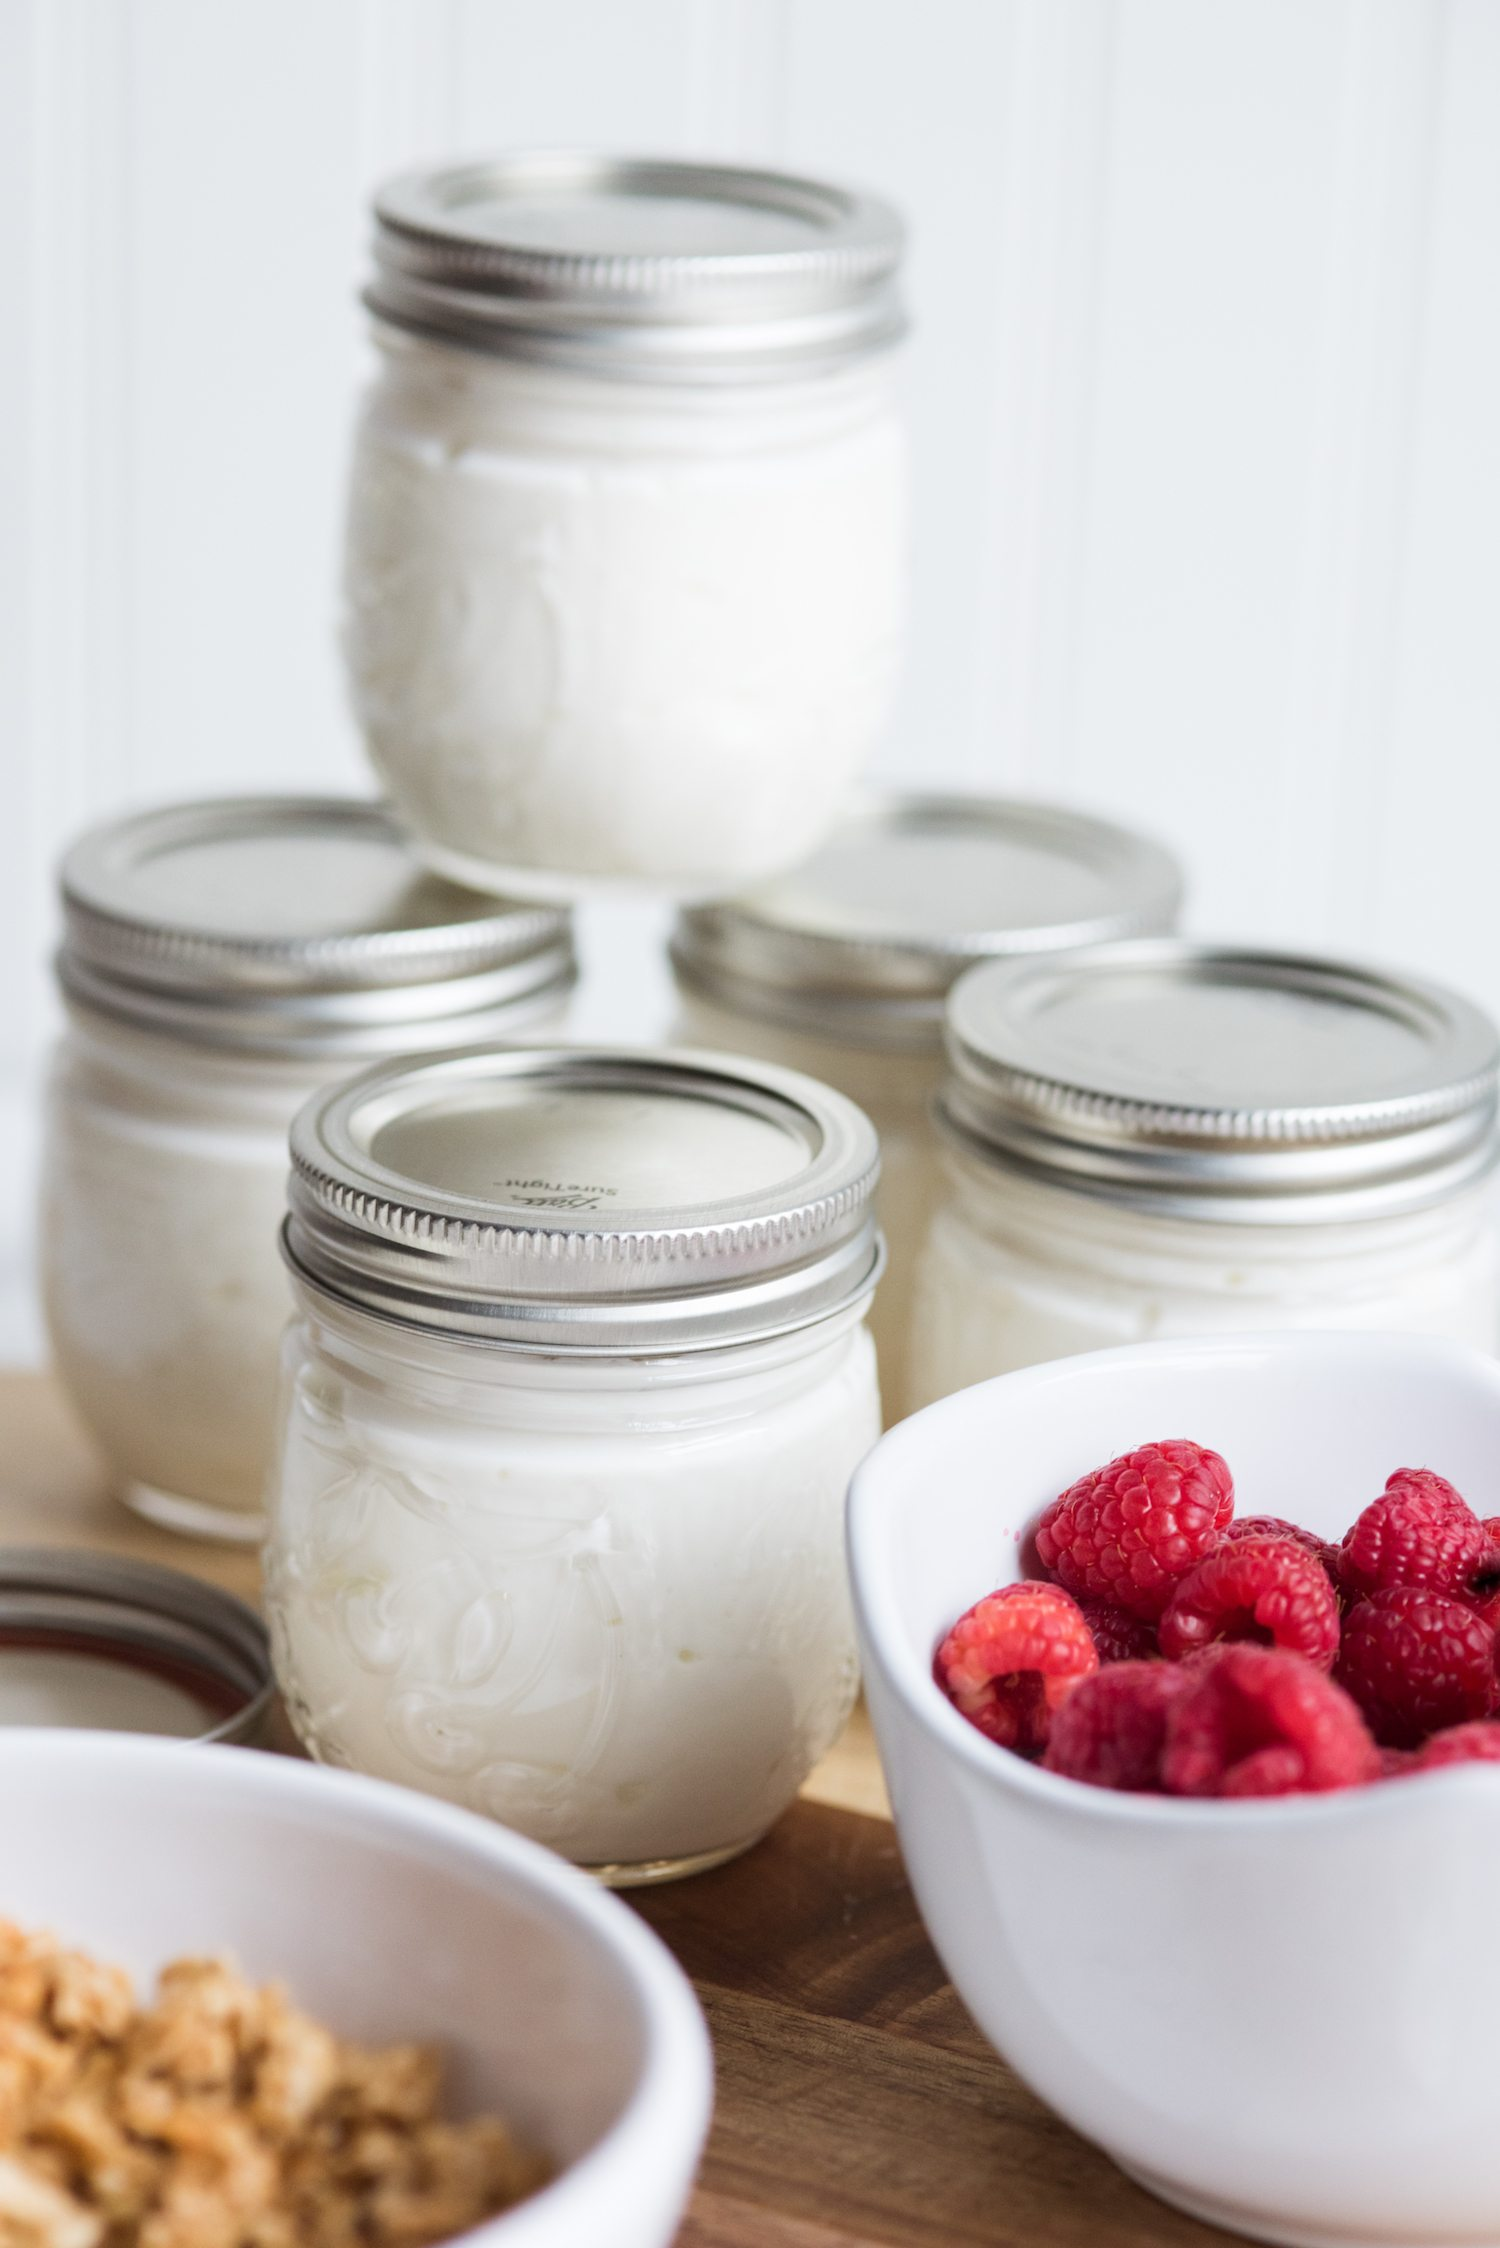 Easy Breakfast To-Go Jars | Click through to check out fun recipes, entertaining tips, party ideas, cocktail recipes and more from @cydconverse